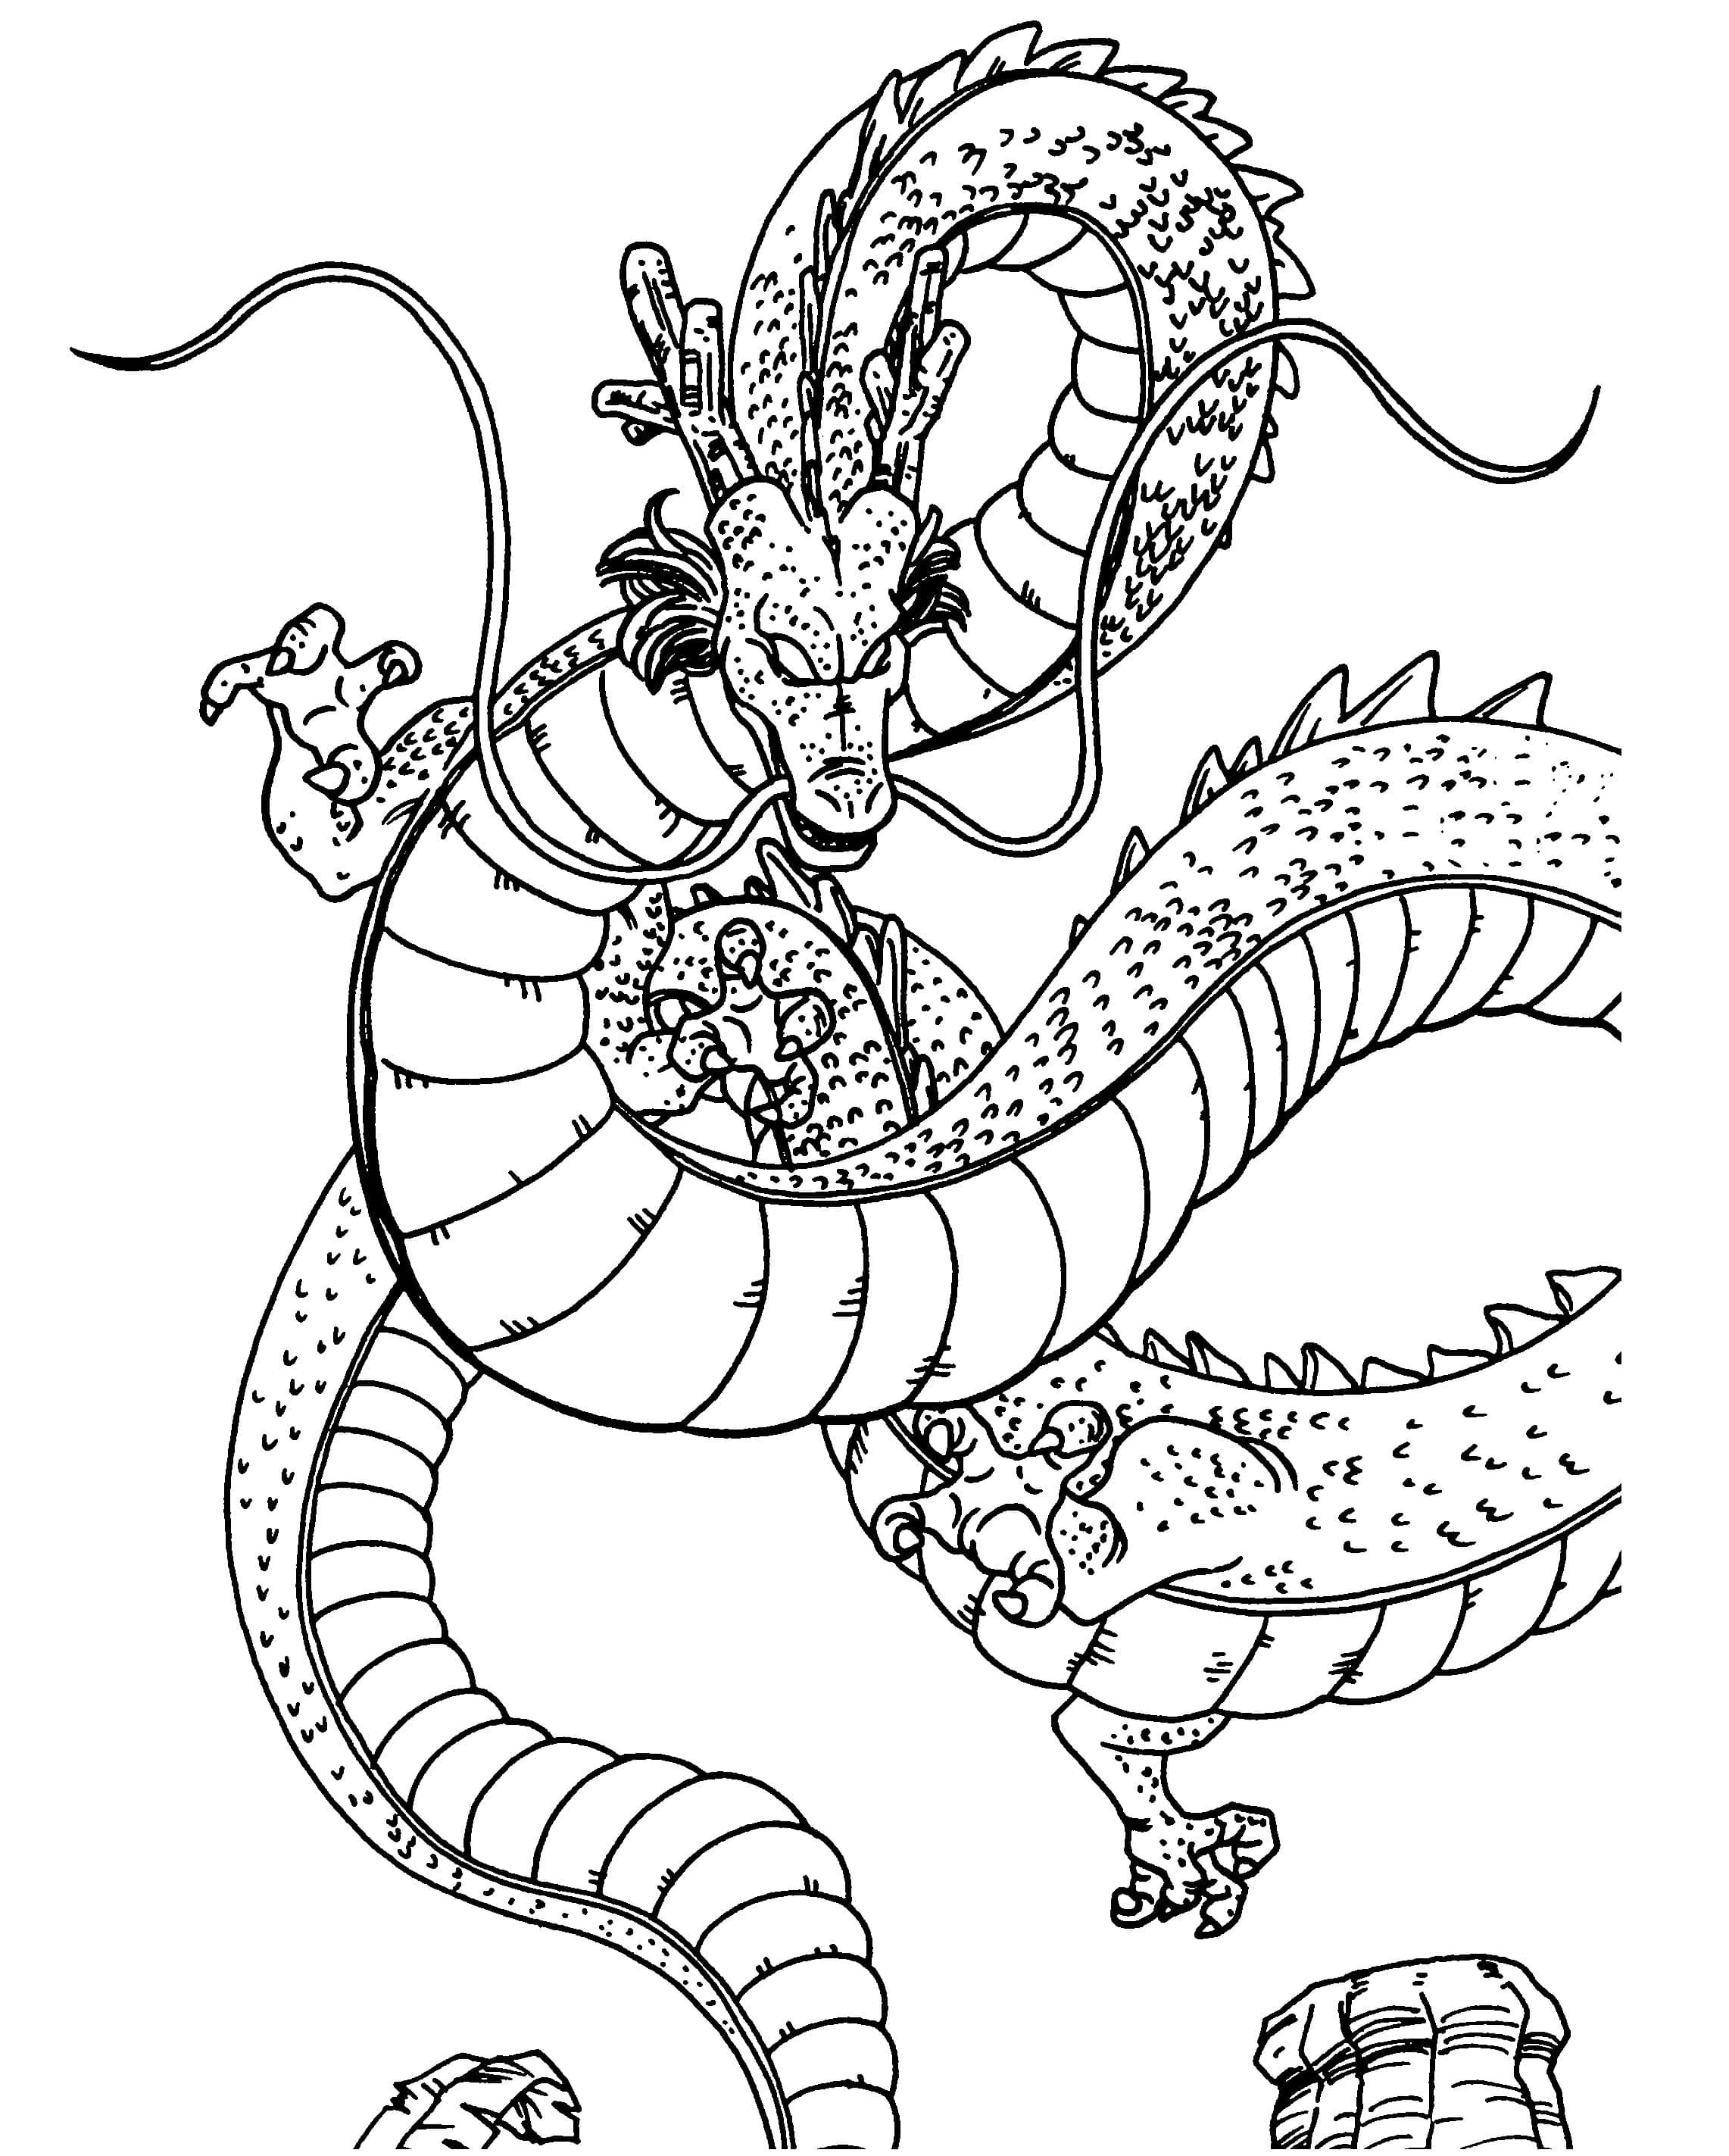 Make a wish to the dragon Coloring Page